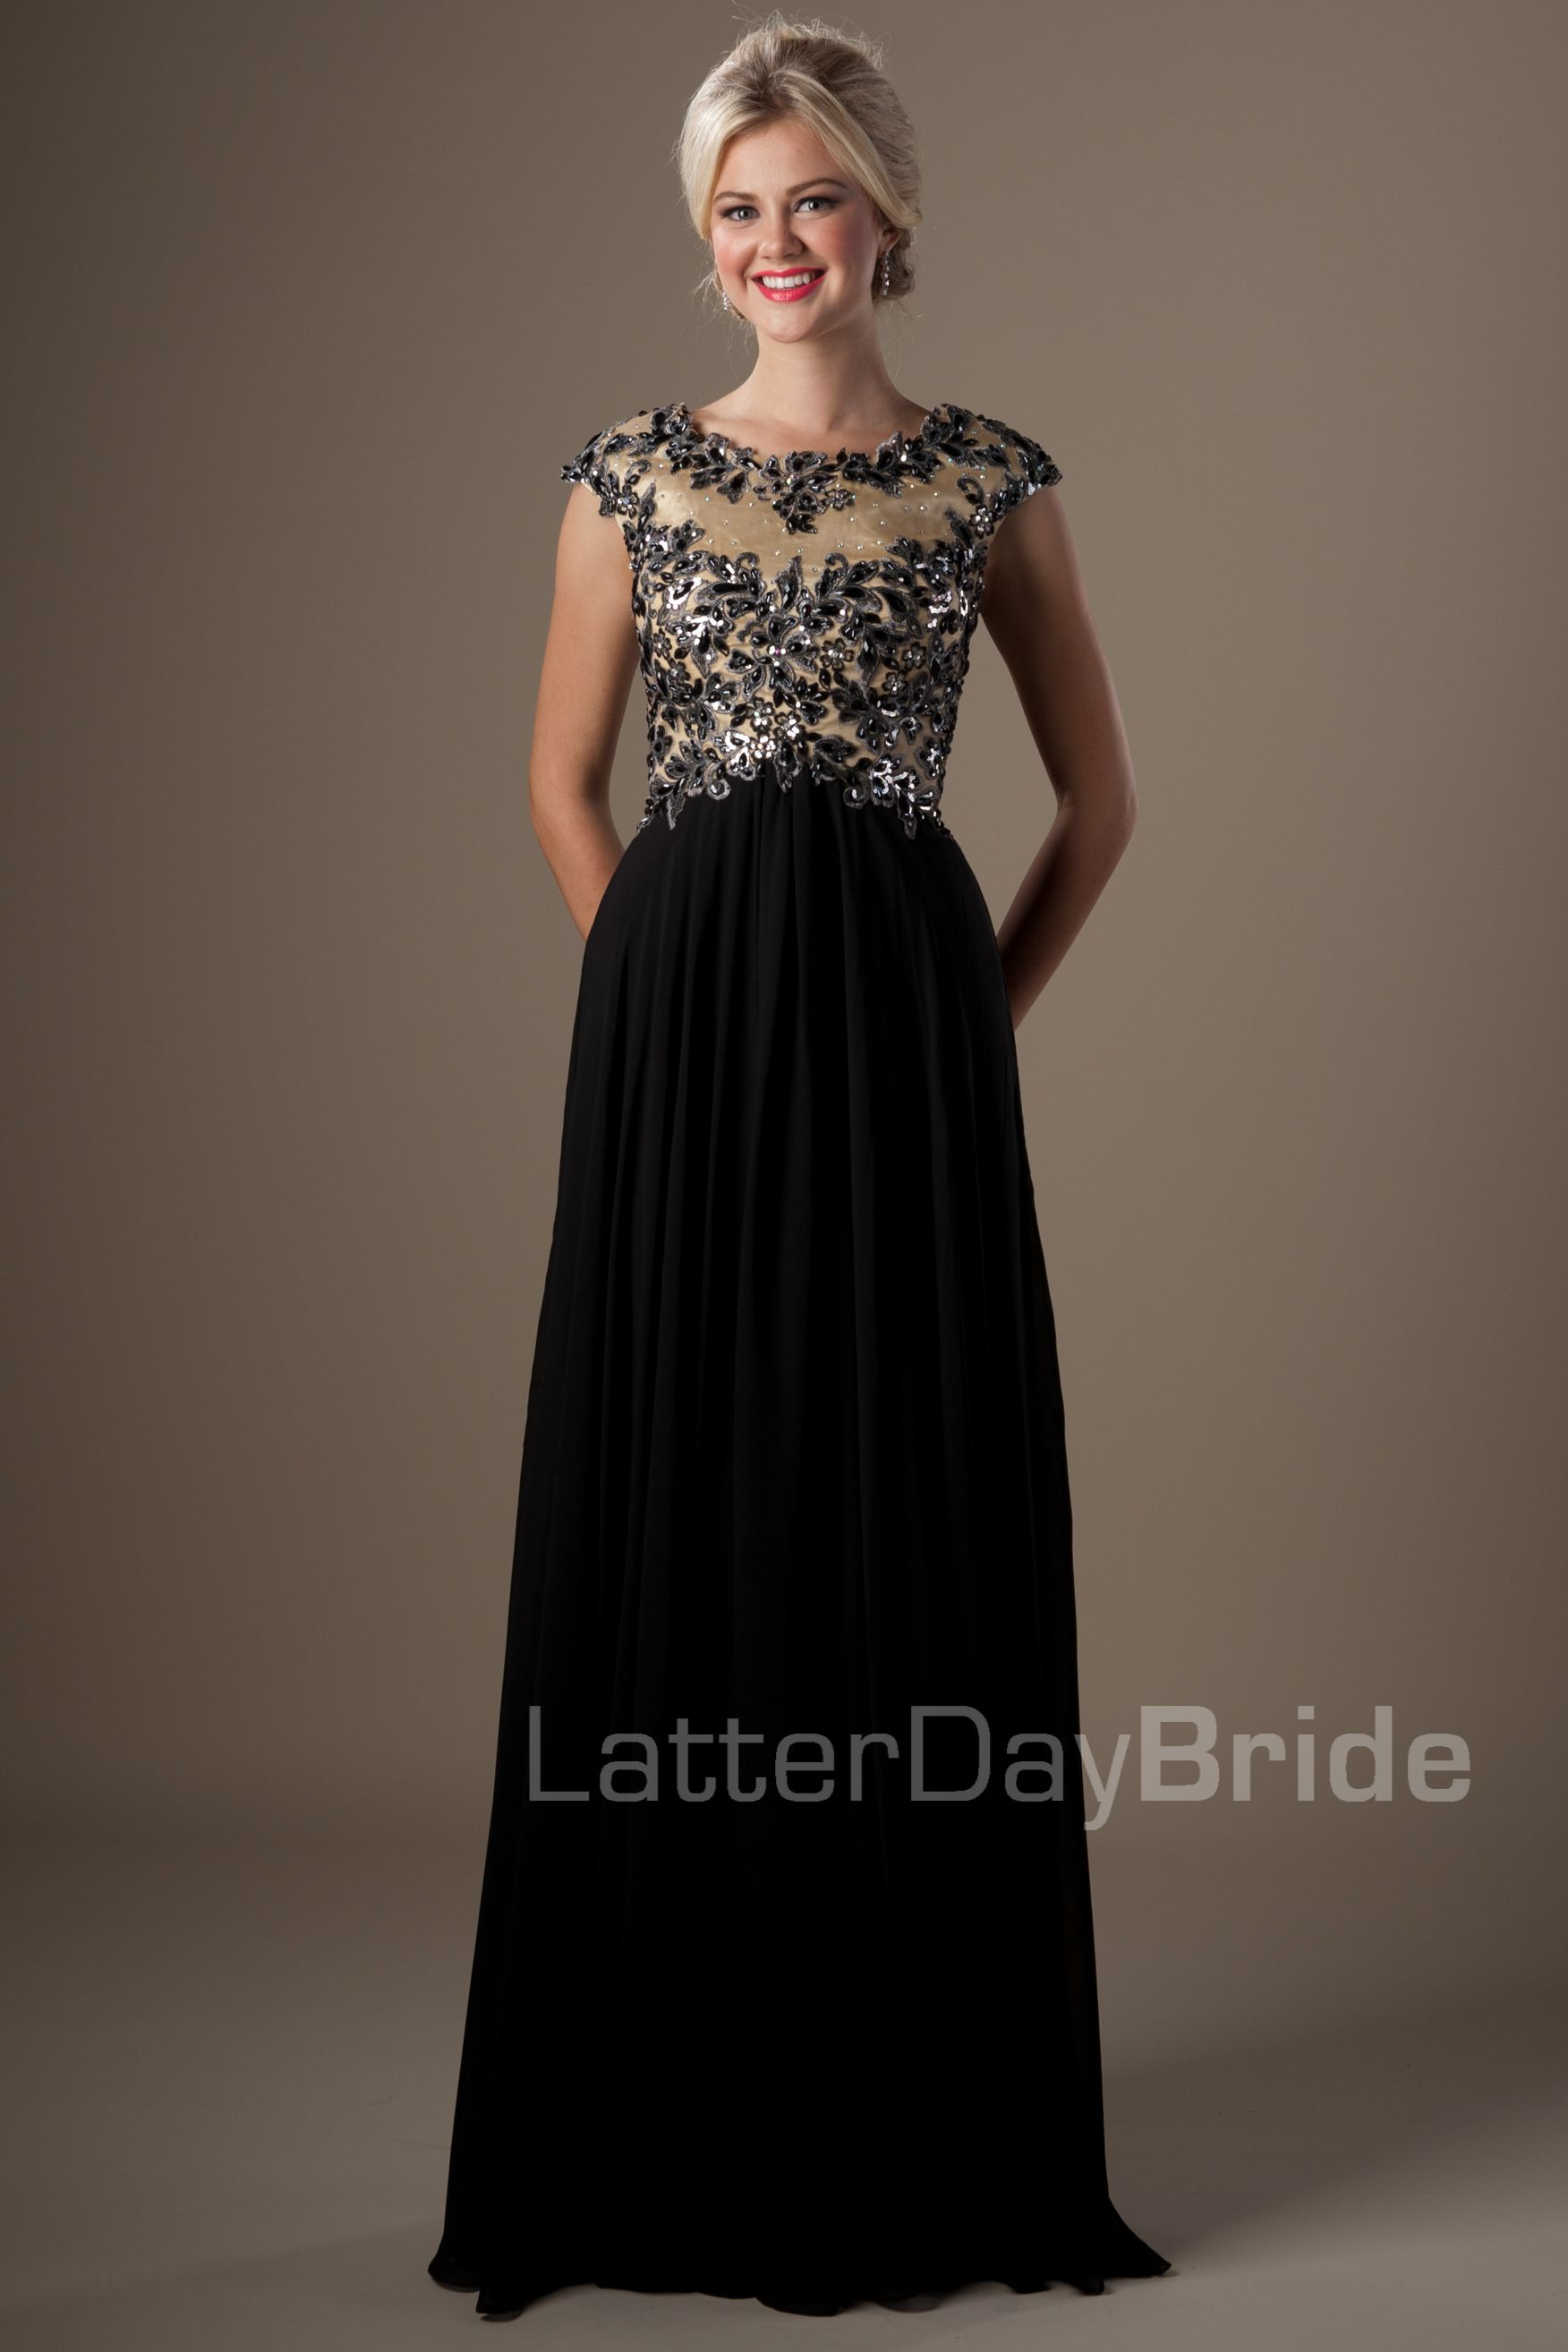 Modest Prom Dresses : Felicity awful hair, but love the dress #modestprom